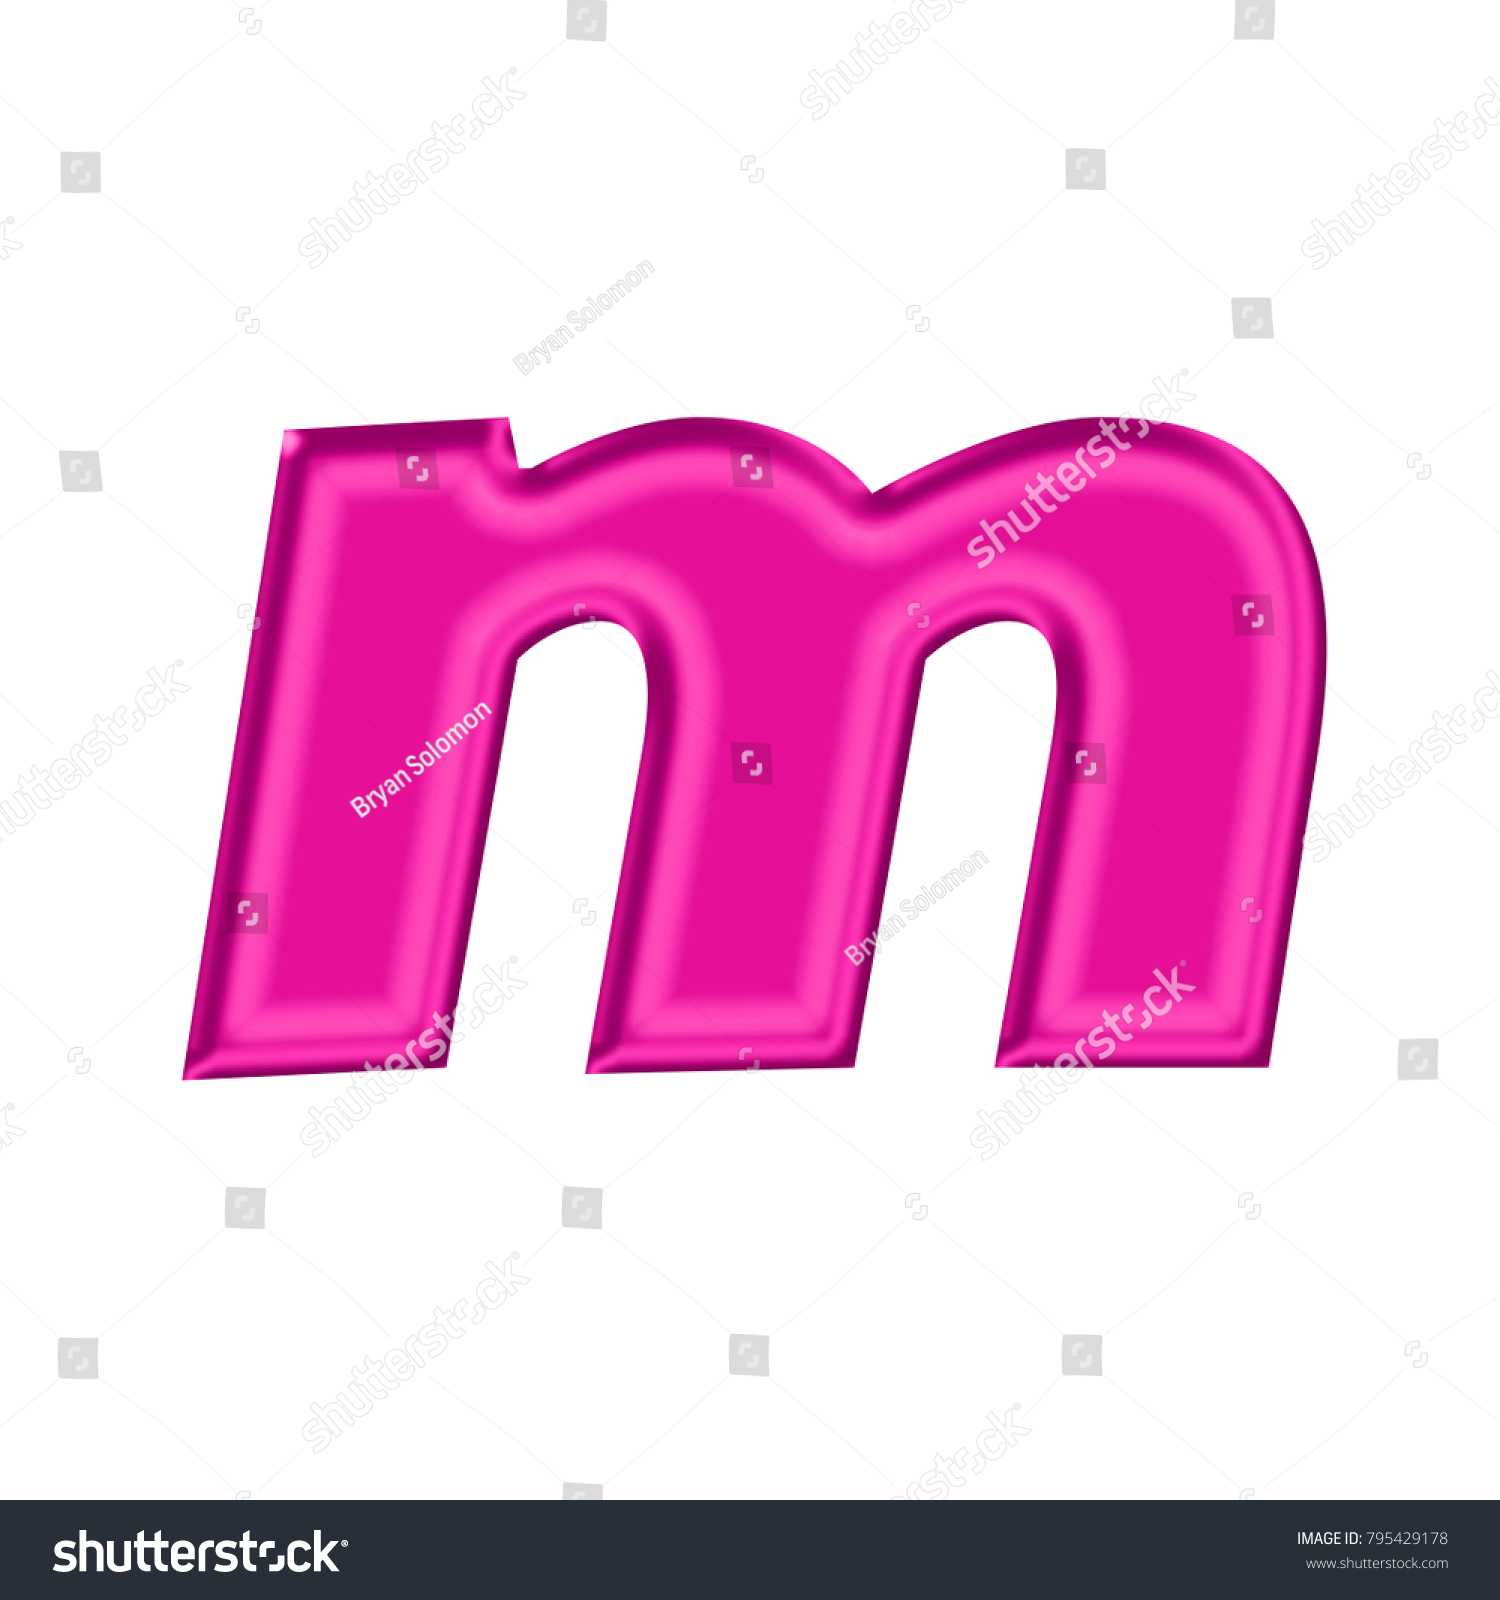 Pink metallic style lowercase or small letter M in a 3D illustration ...